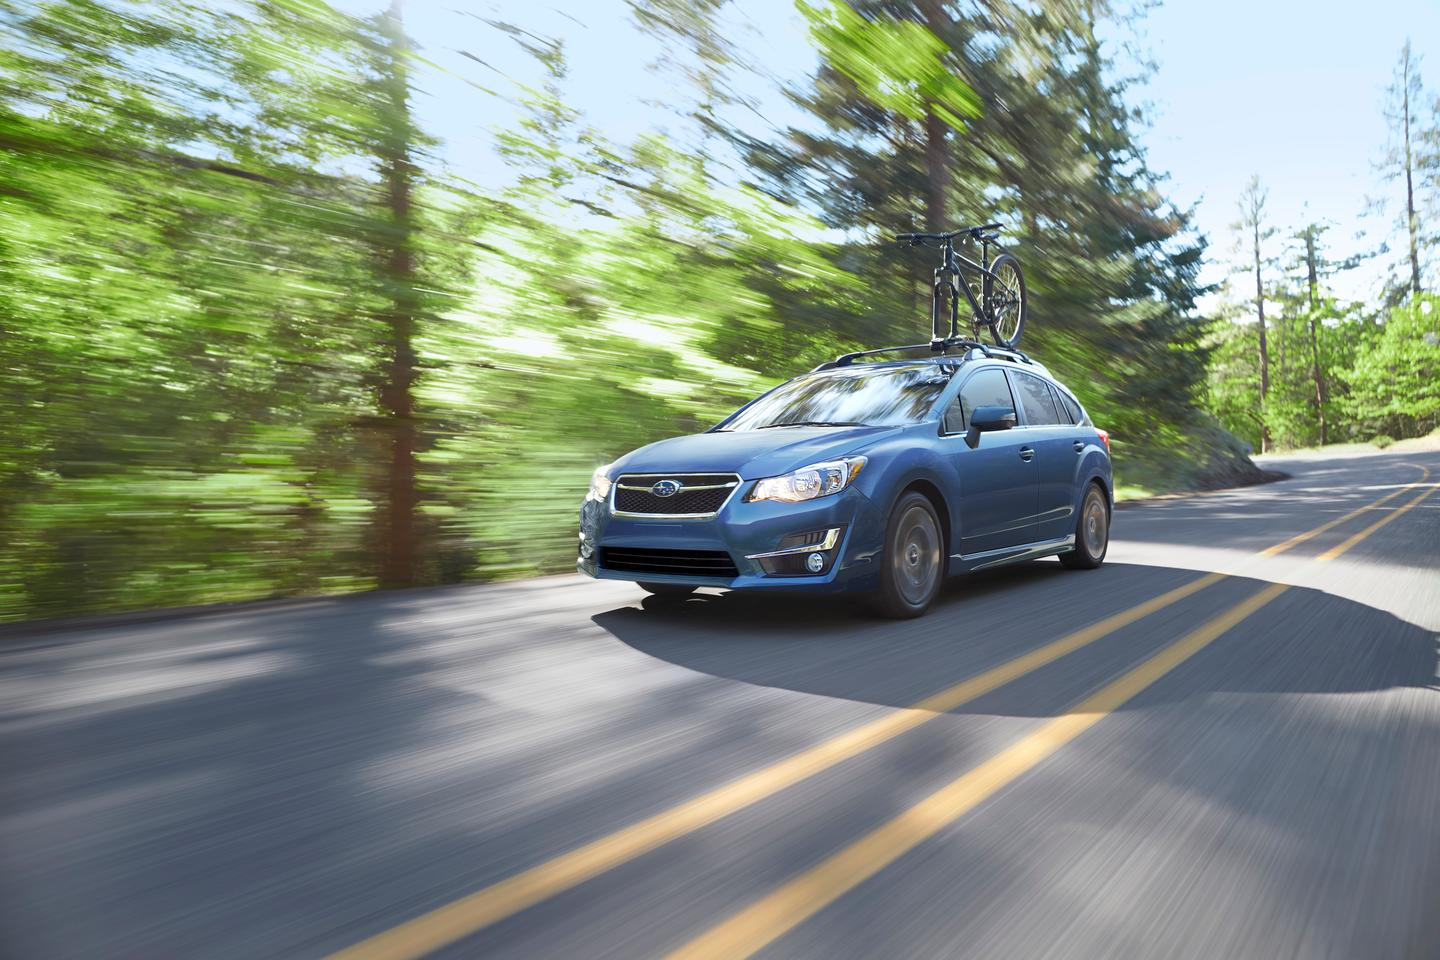 The new Subaru Impreza should be quieter for passengers